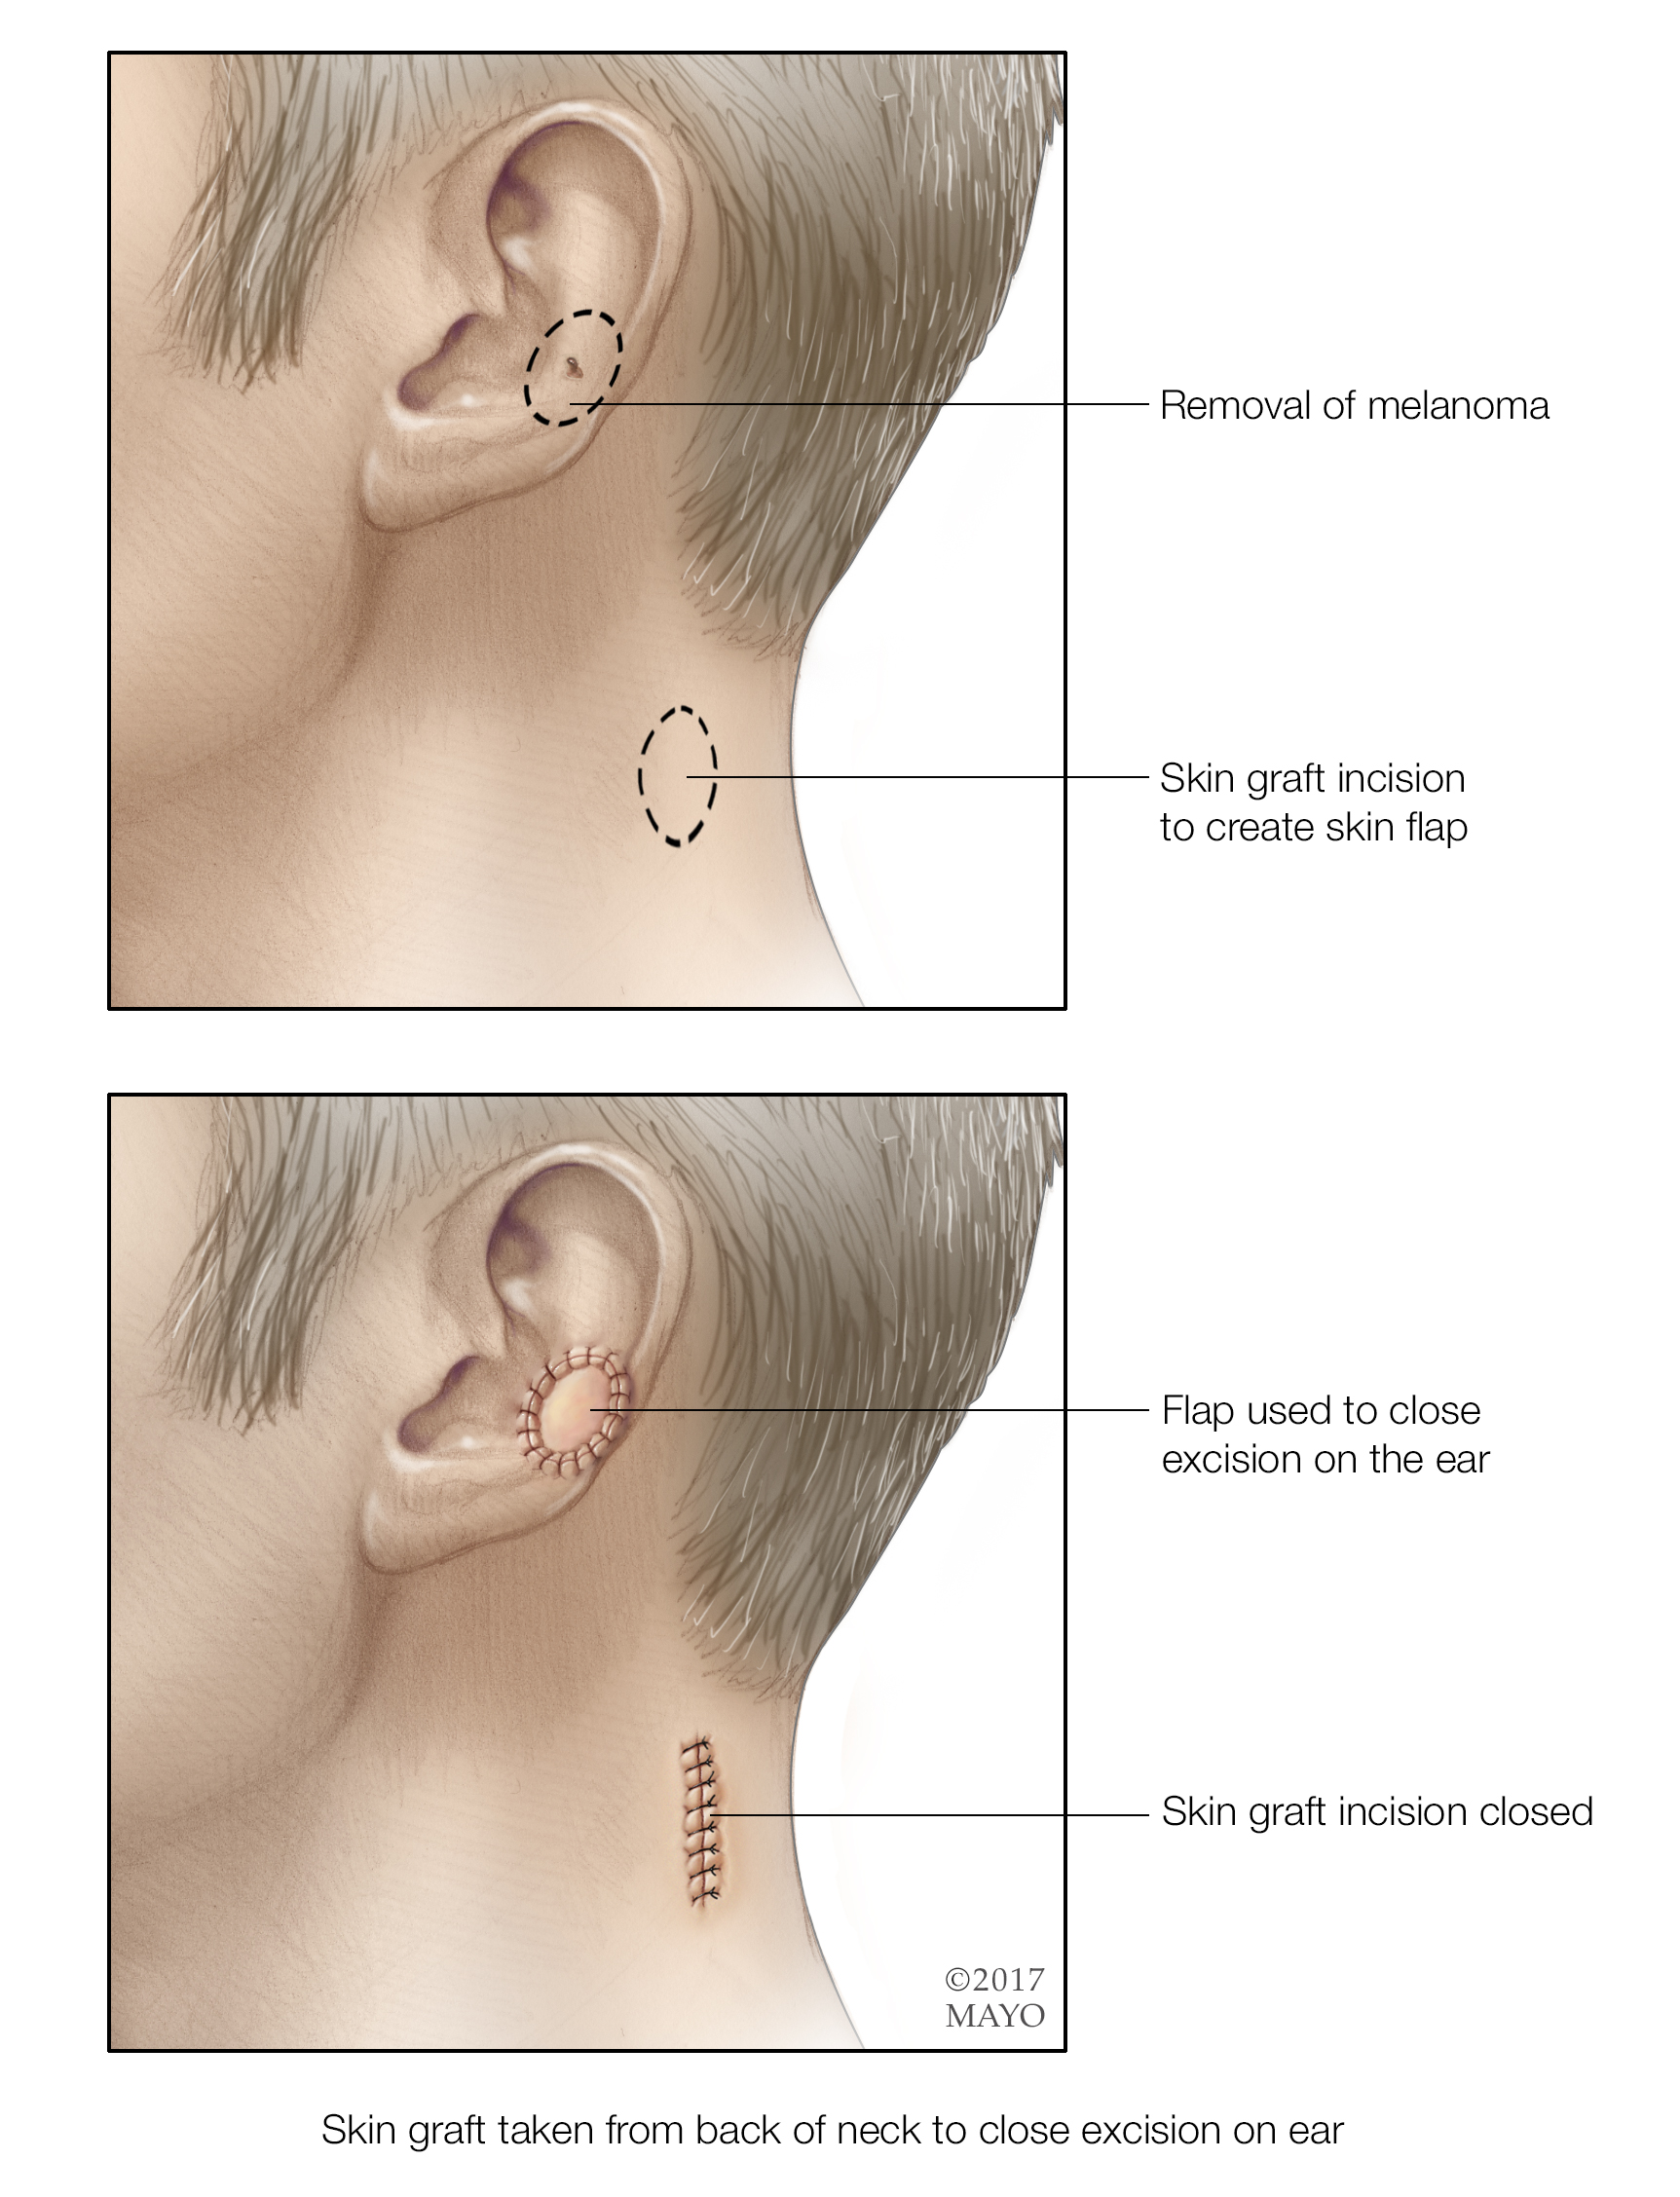 What do we hear about melanoma of the ear? | Discovery's Edge